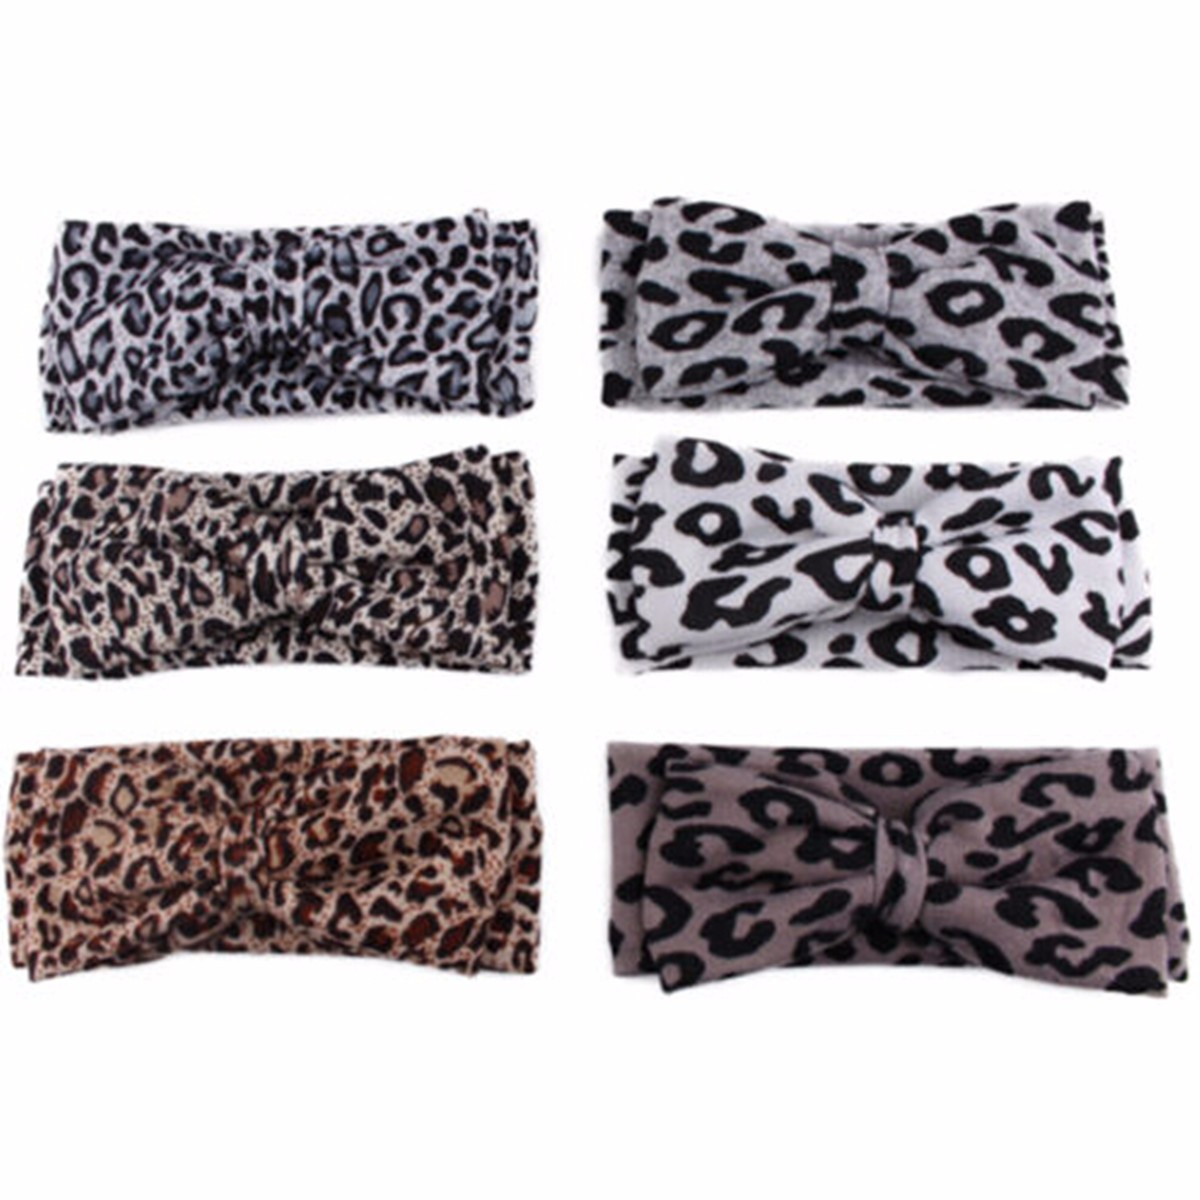 Toddler Baby Infants kid Girl Leopard Floral Bow Knot Headbrand Elastic Stretch Hair Band Accessories